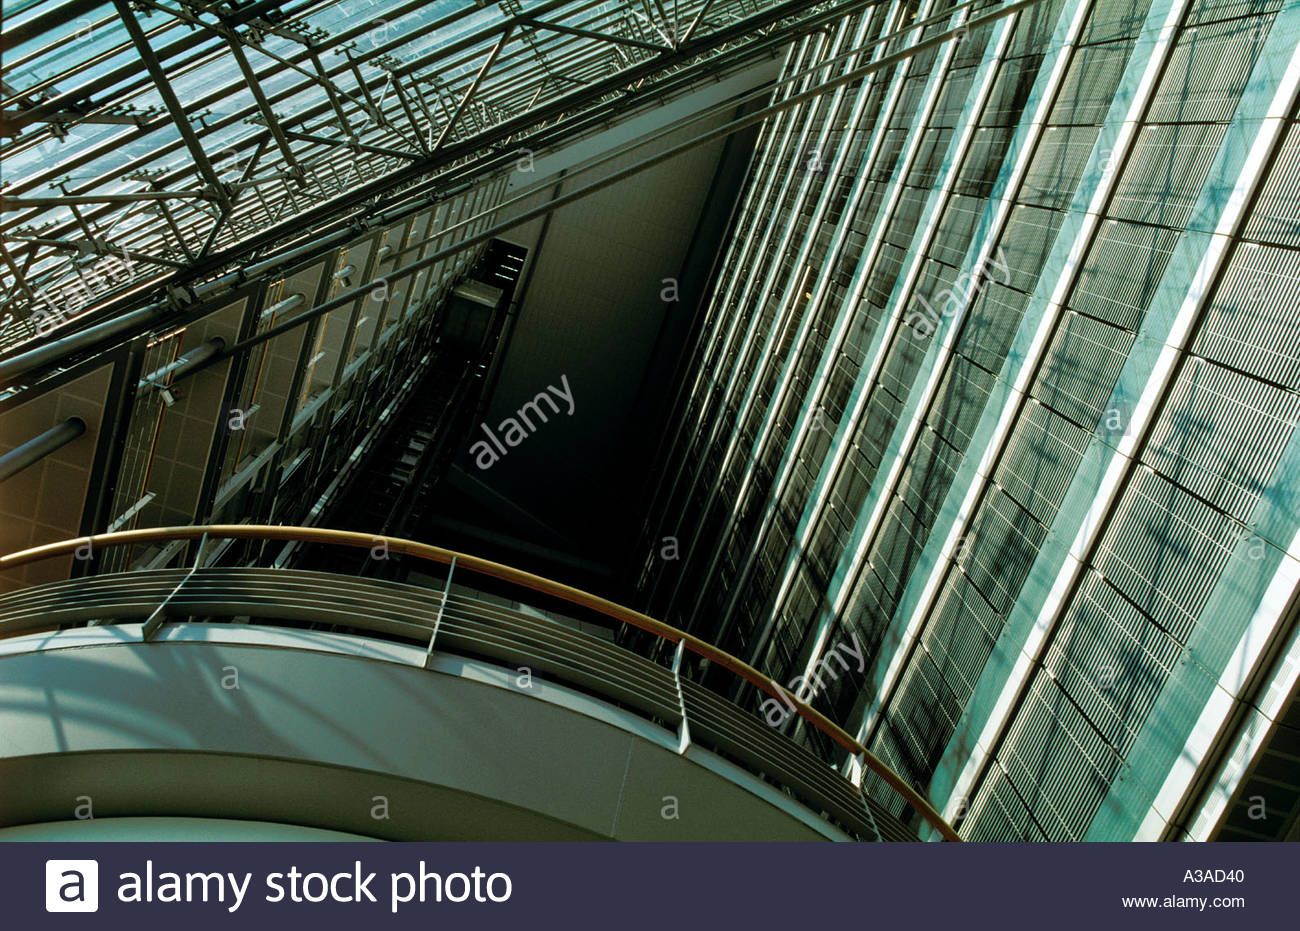 Modern Architecture Europe stadttor city gate arch modern architecture office building lobby